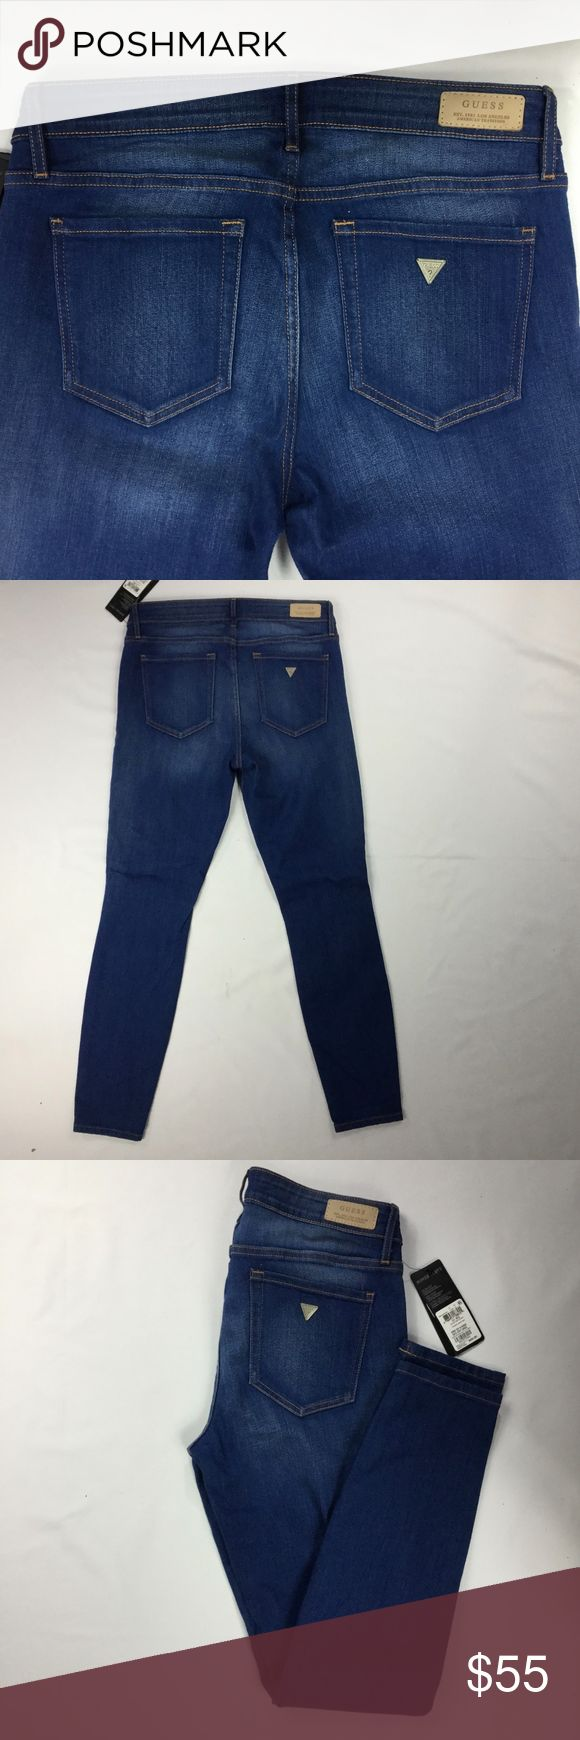 """GUESS Power Curvy MidRise Chula Vista Wash Skinny GUESS Power Curvy Mid Rise Chula Vista Skinny Jean  NEW* WITH TAGS  BRAND: Guess SIZE: 31  STYLE: Skinny Jean   COLOR: Chula Vista Blue CONDITION: New with Tags / No Visible Flaws  MEASUREMENTS IN INCHES  WAIST: 15.5"""" RISE: 9.5"""" HIP: 18.5"""" OPENING: 5.5"""" INSEAM: 30.5""""  curvy mid rise skinny denim blue wash skinny jean Guess Jeans Skinny"""